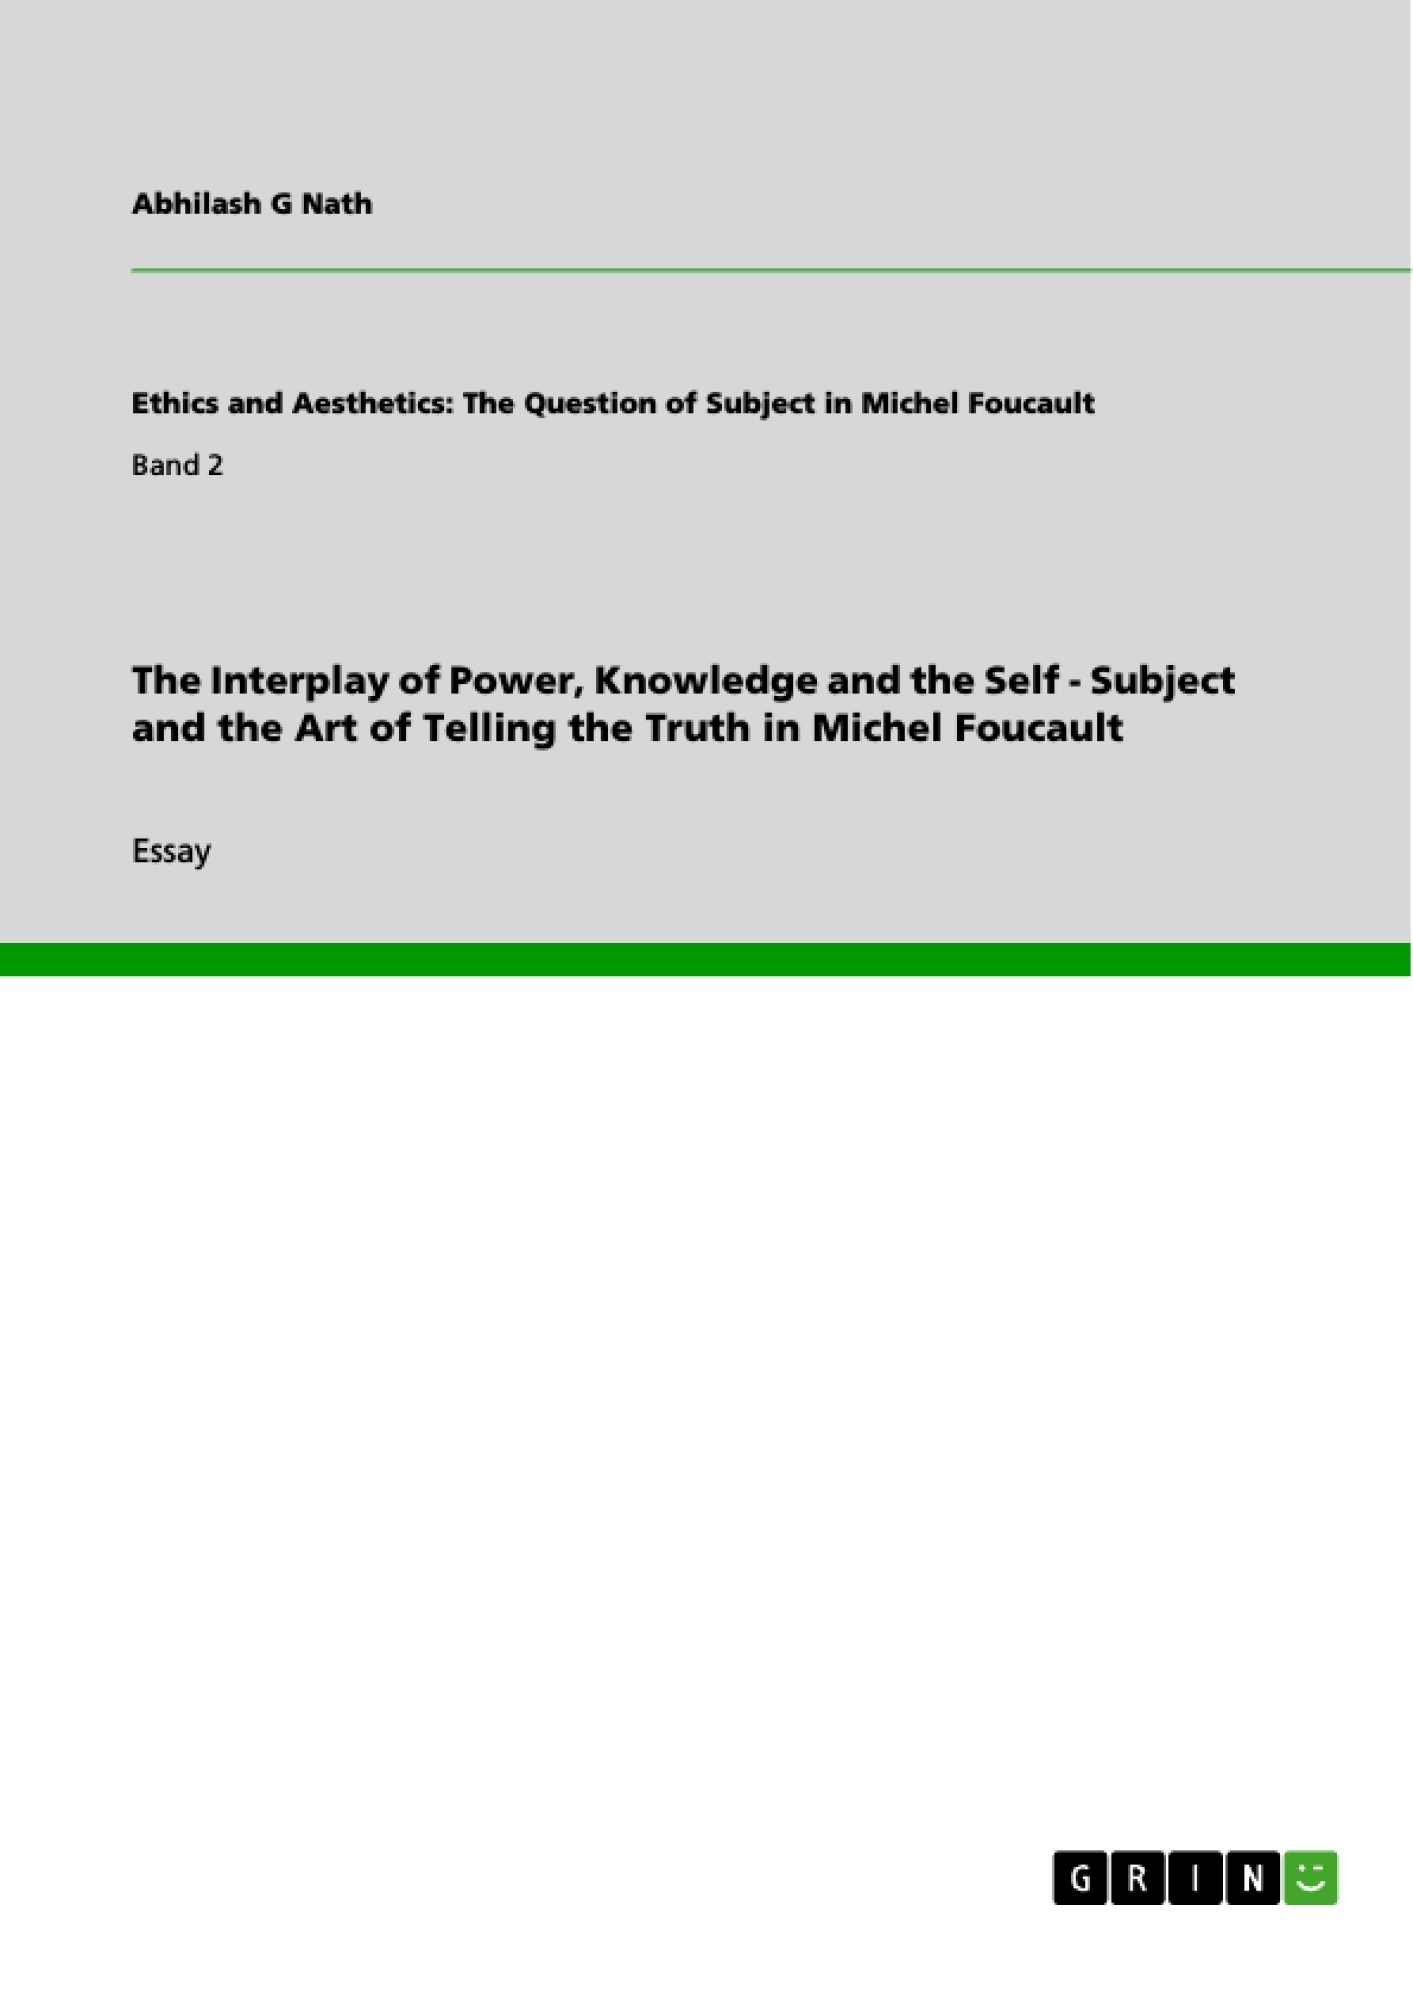 Title: The Interplay of Power, Knowledge and the Self - Subject and the Art of Telling the Truth in Michel Foucault